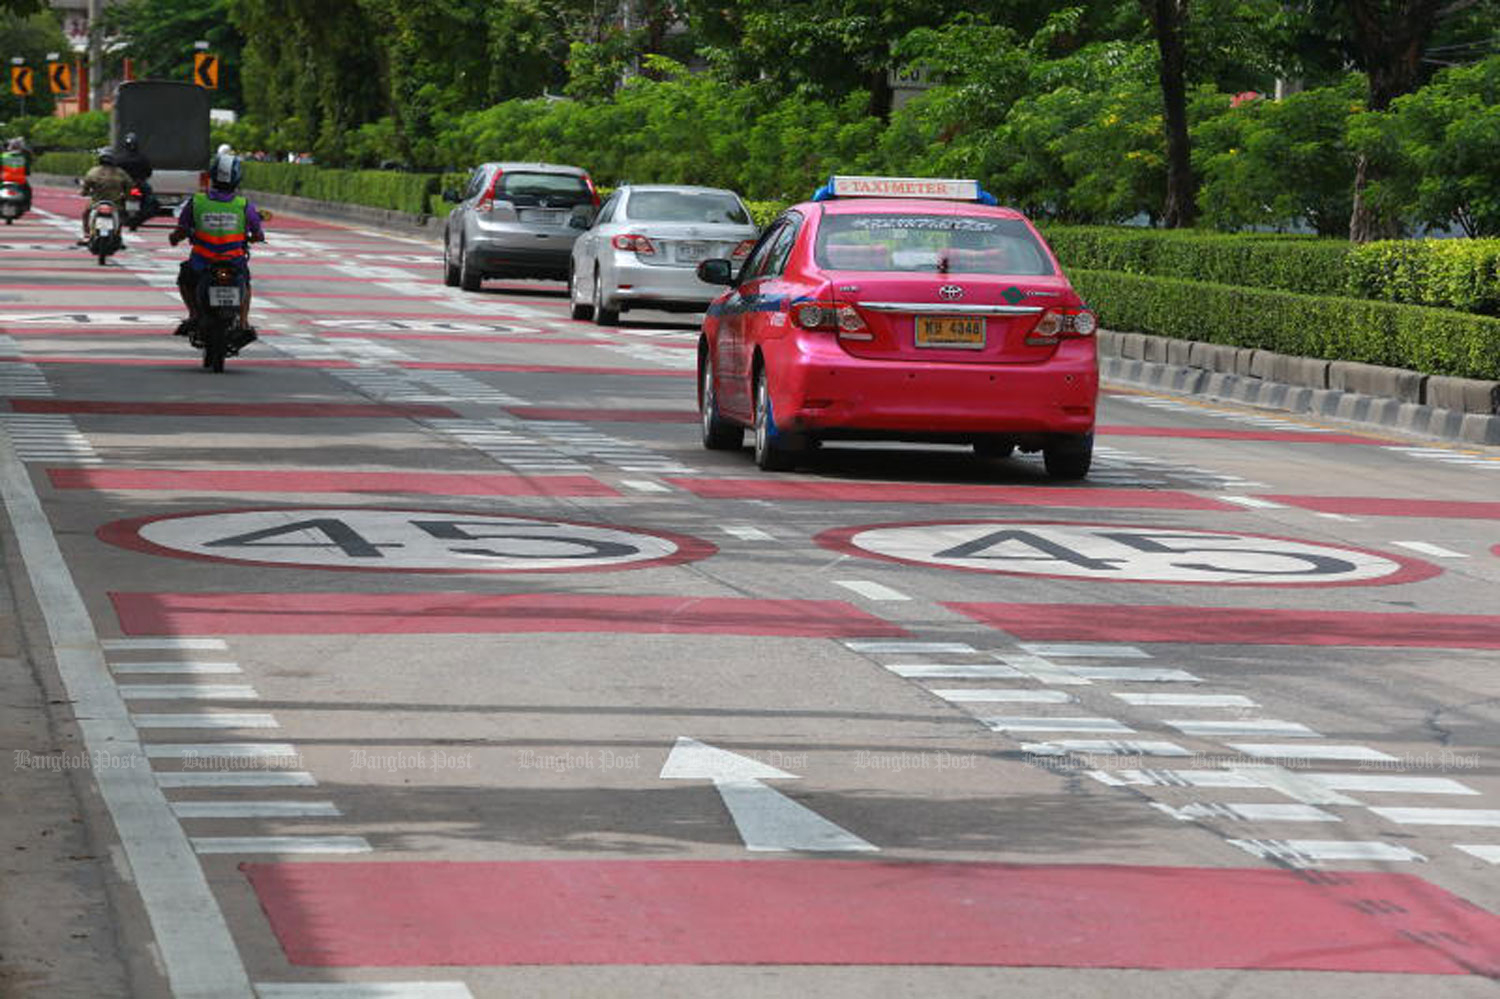 Markings showing a 45km/h speed limit are seen on the outbound lanes of Ratburana Road near Soi Ratburana 5 in Bangkok's Bang  Kholaem district to warn motorists ahead of a bend which is a blind spot. (File photo: Somchai Poomlard)